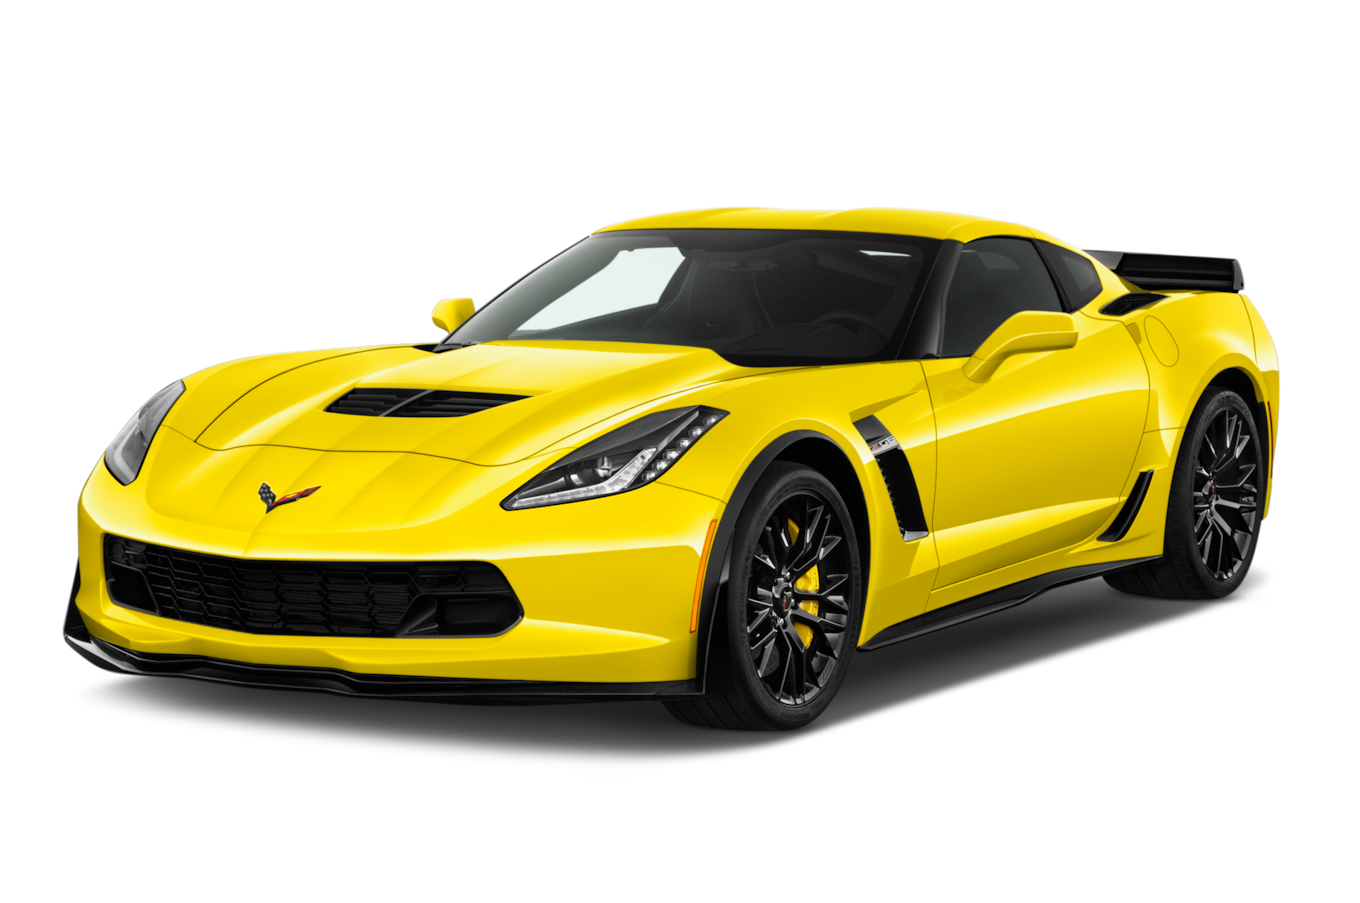 Santa in corvette clip. Clipart car yellow